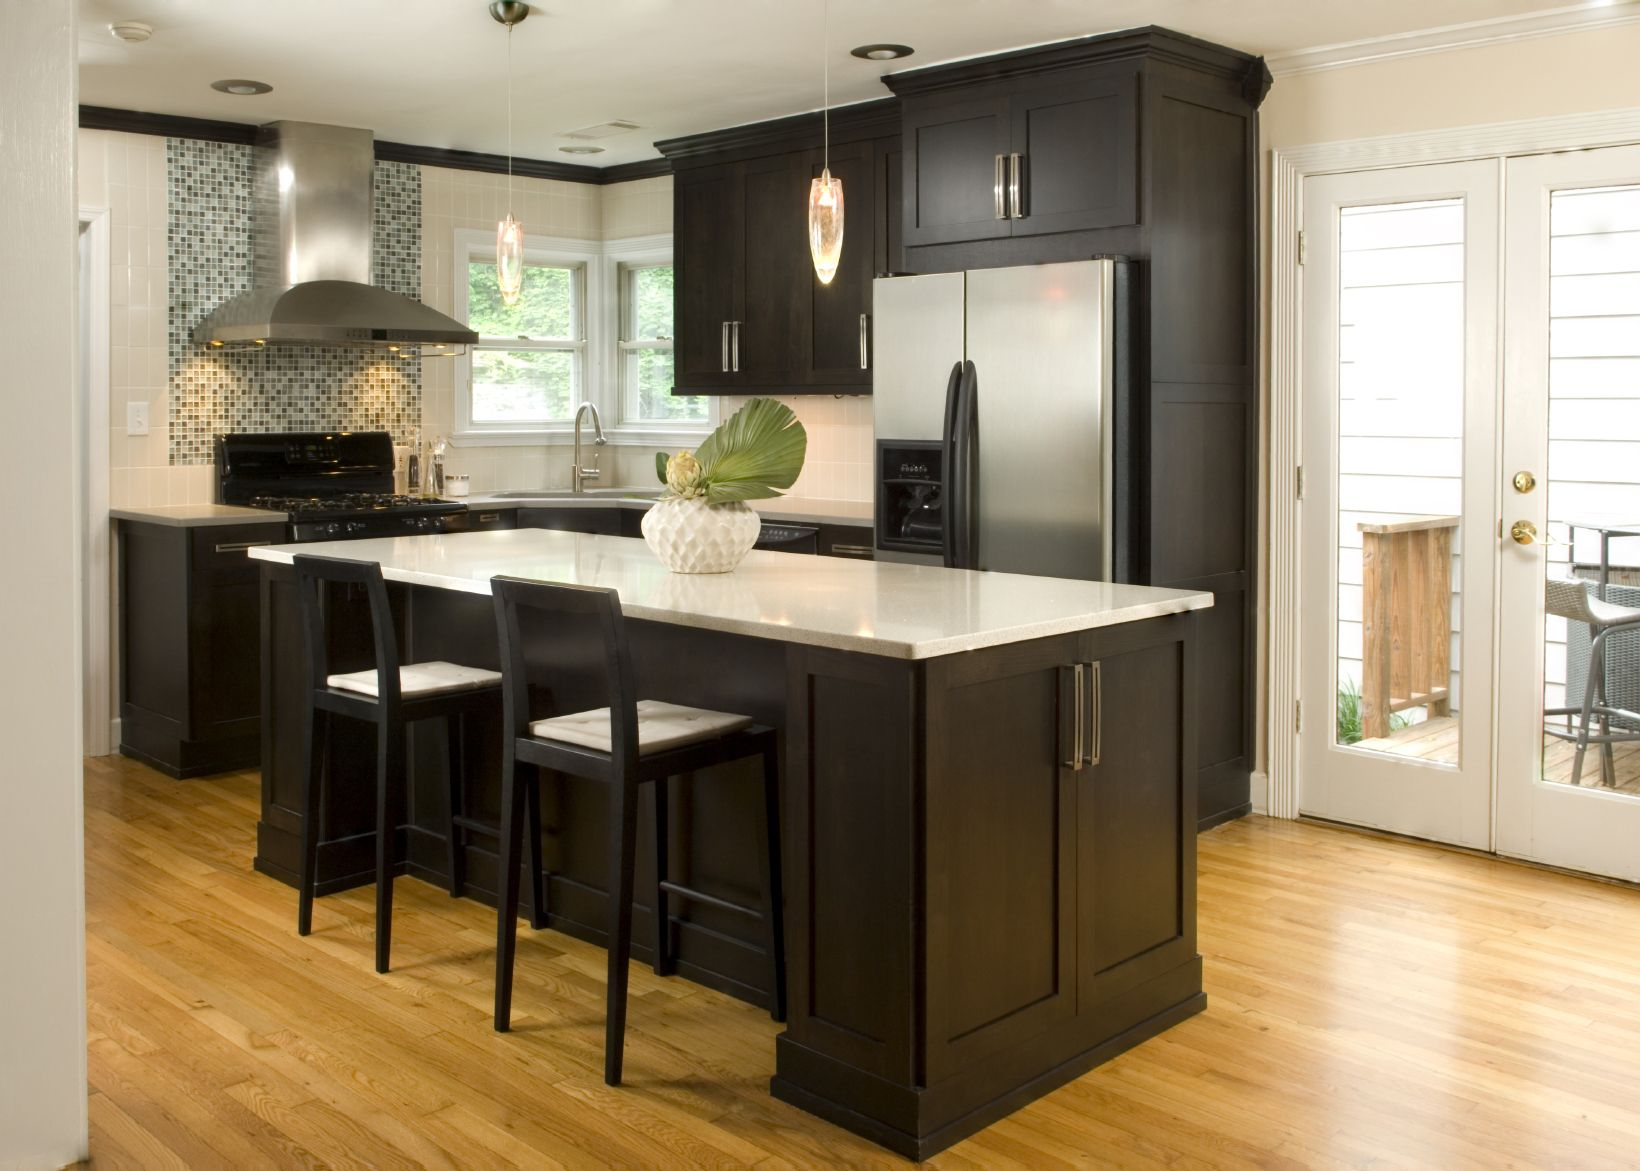 Download Wallpaper What Is More Popular White Or Dark Kitchen Cabinets